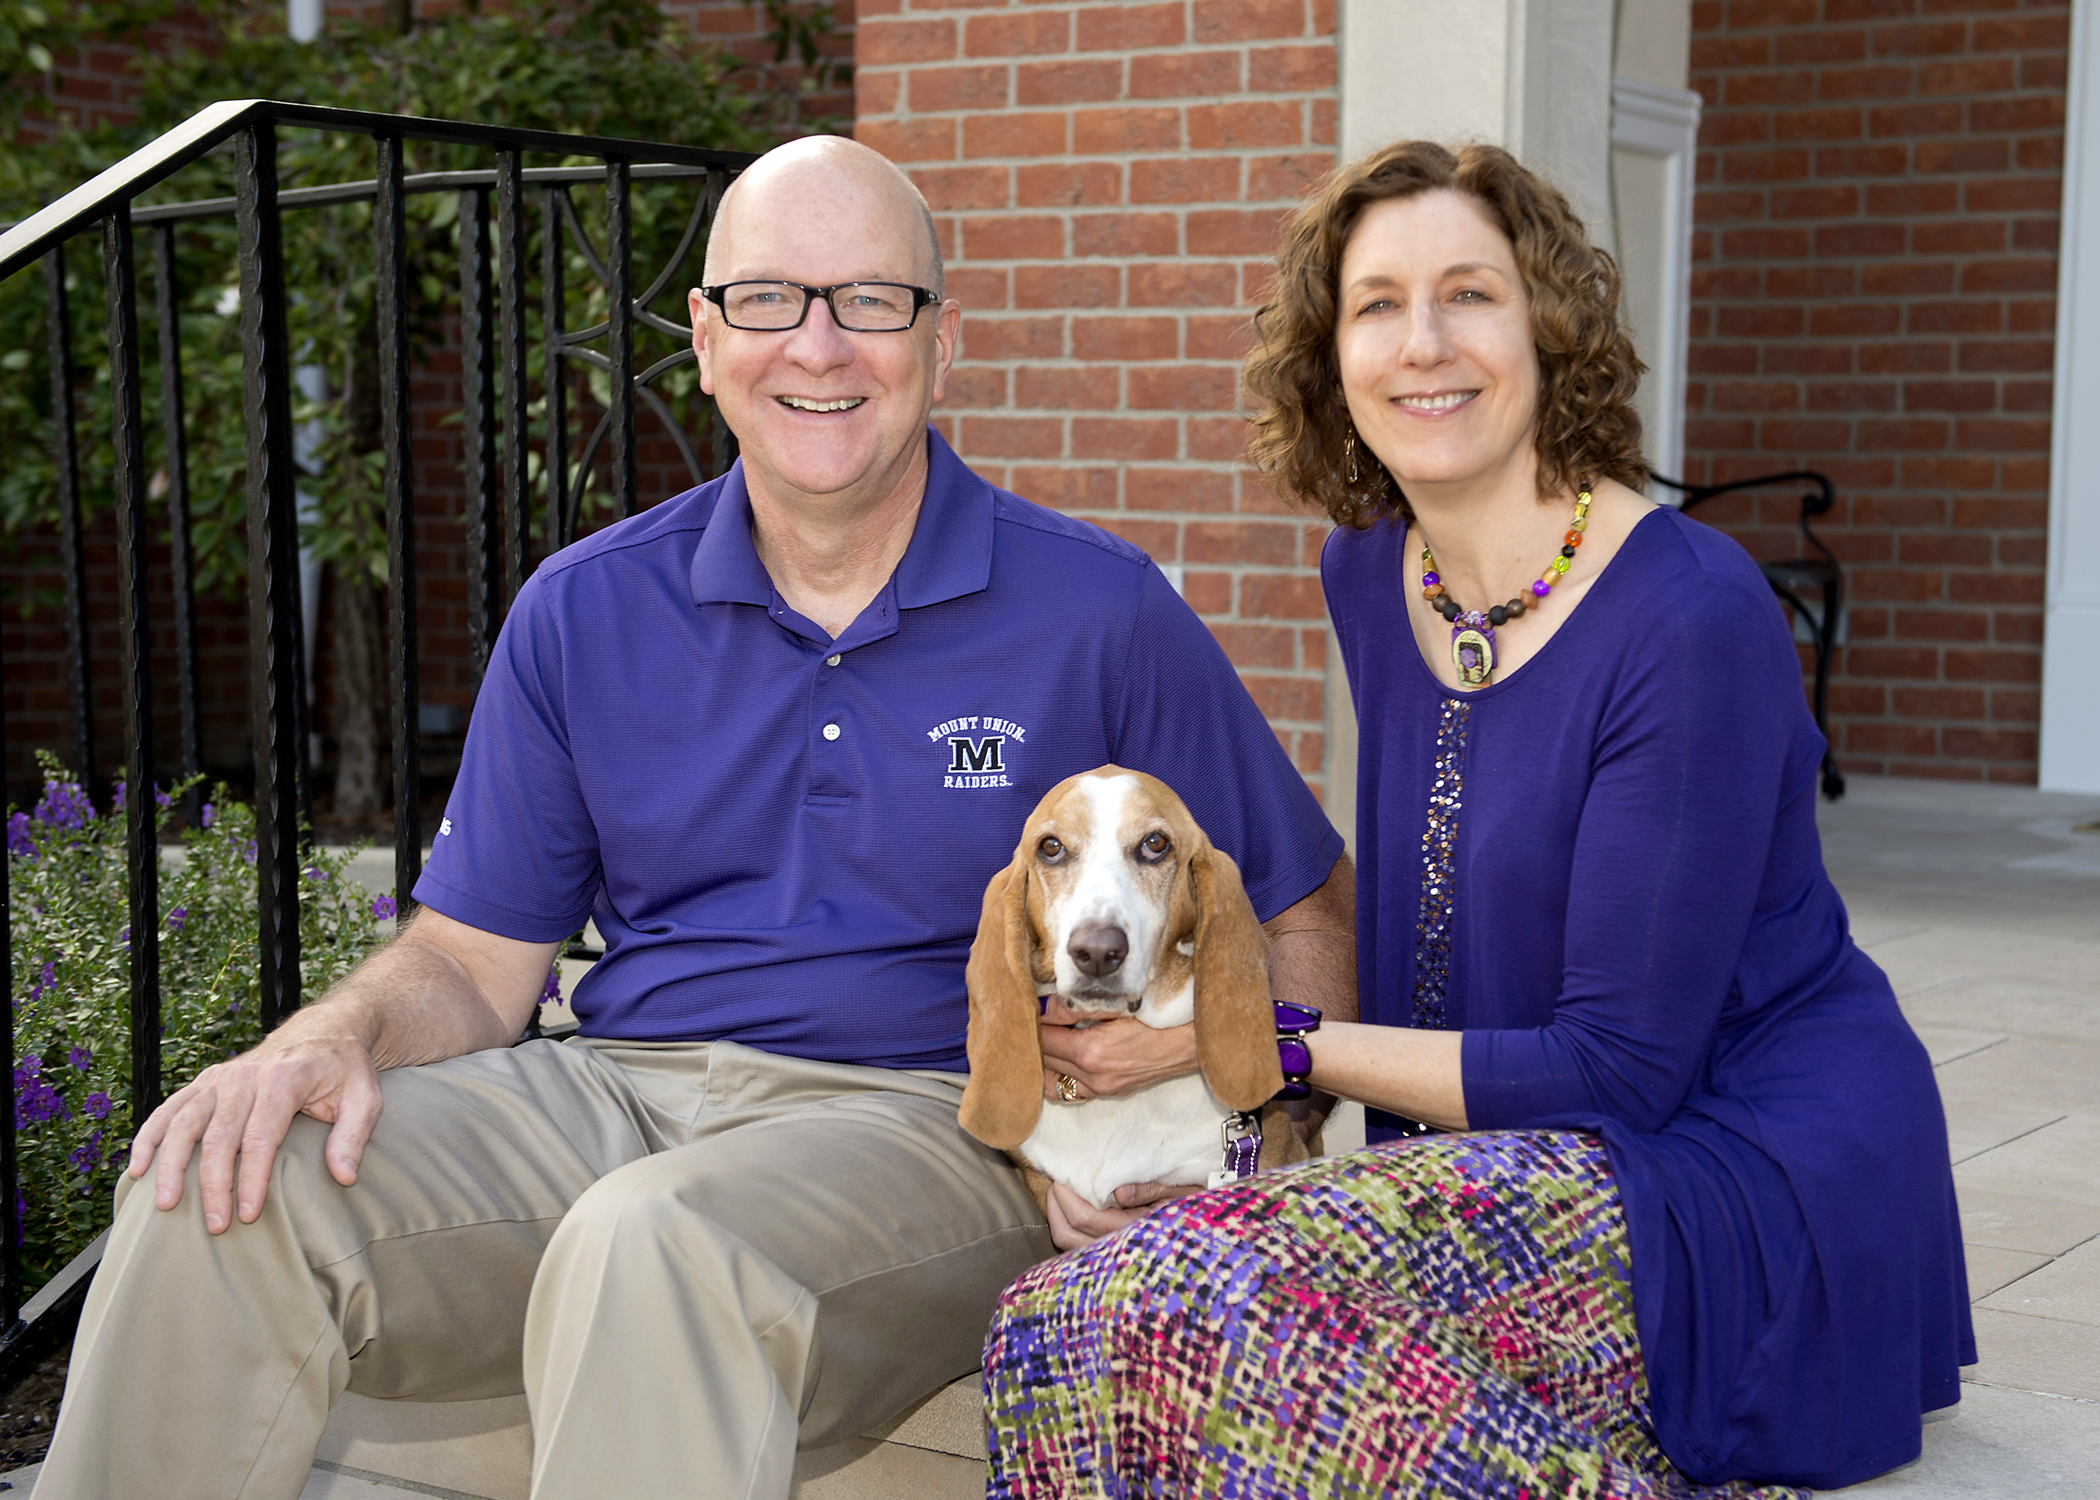 University of Mount Union President Dick Merriman, his wife Margot Kelman, and their dog Jasmine